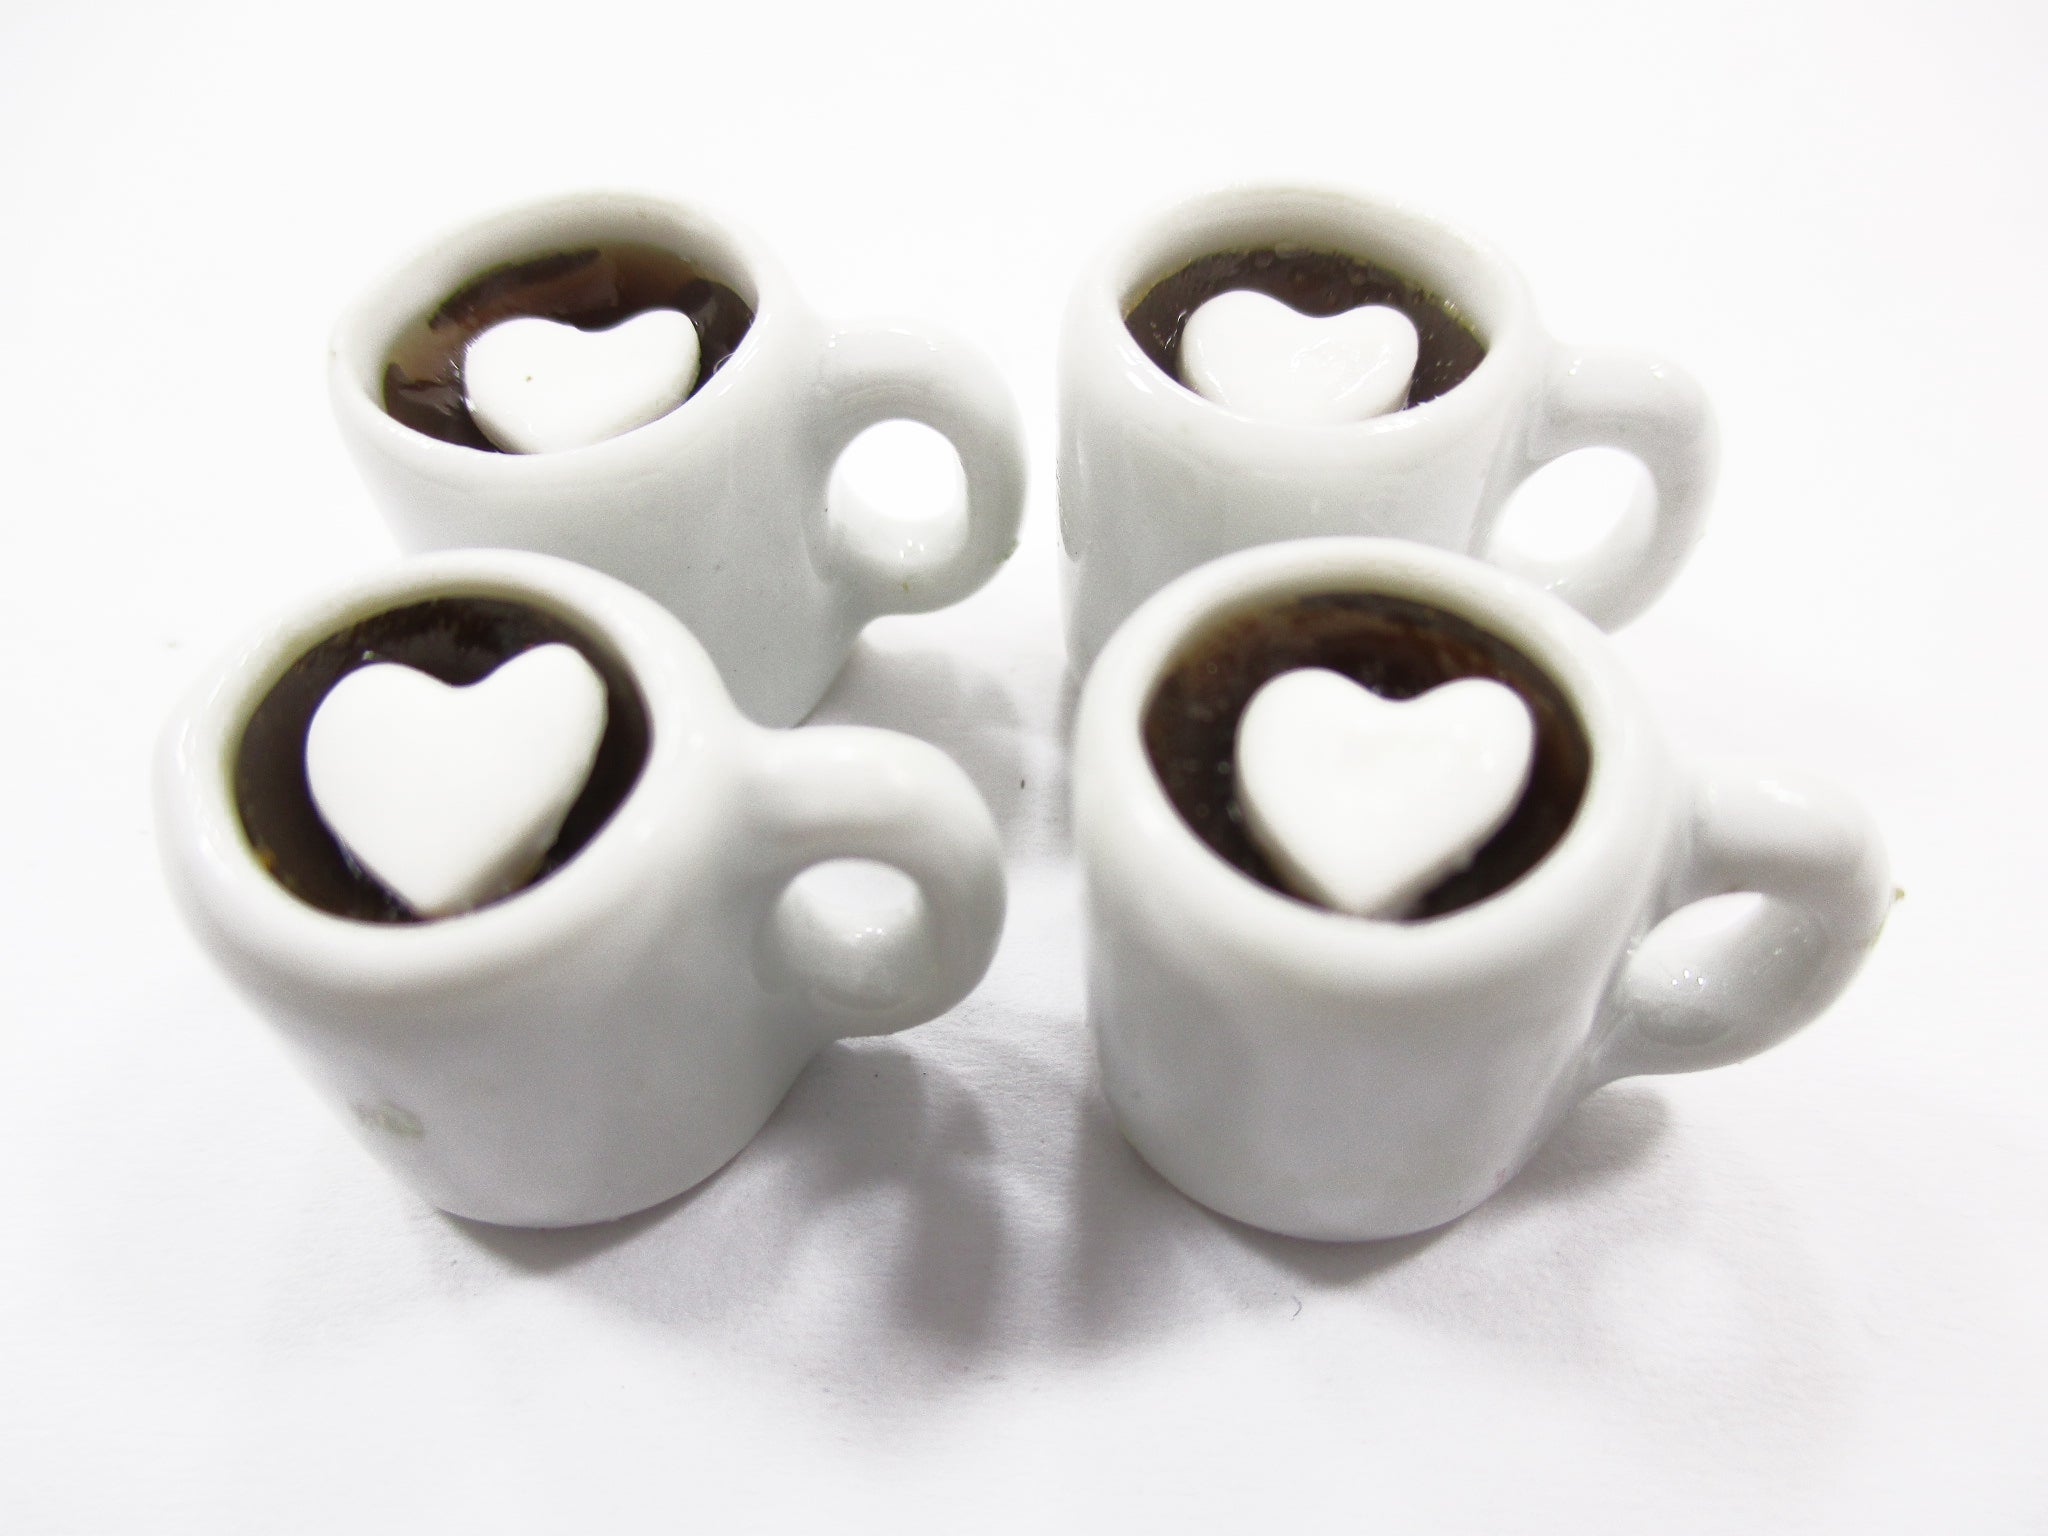 4 CUPS OF BLACK COFFEE DOLL HOUSE MINIATURE